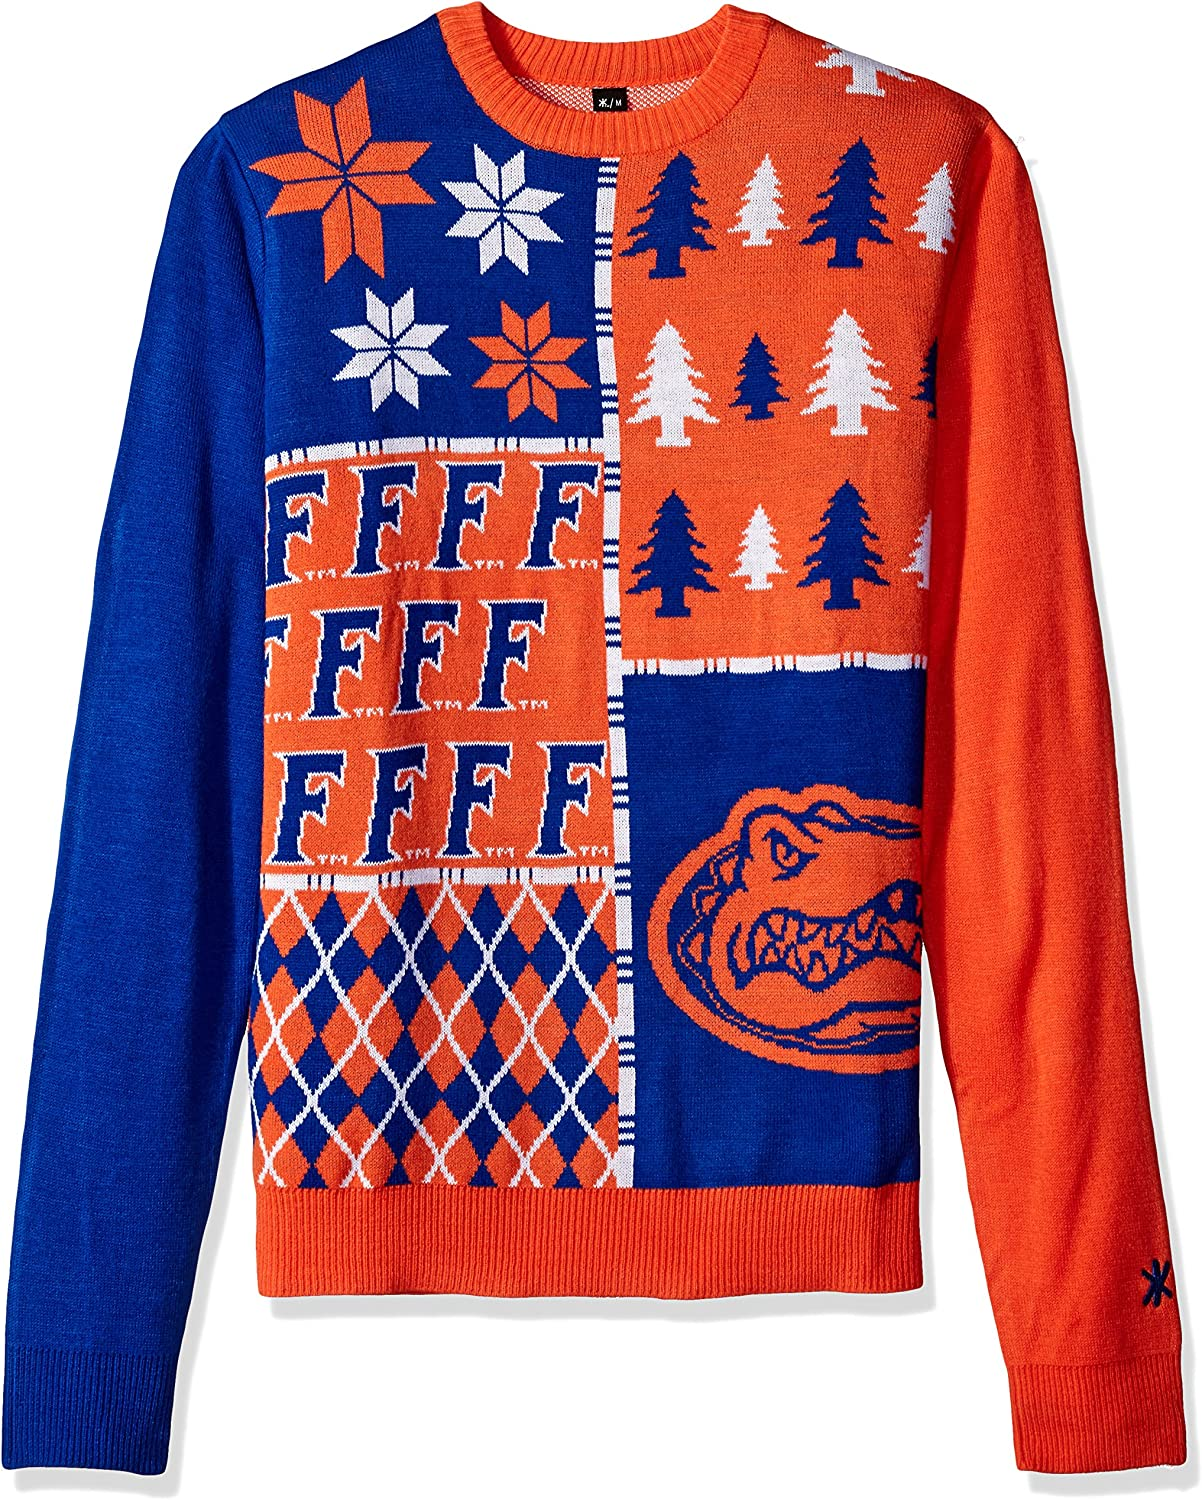 Klew NCAA Busy Block Max 55% OFF Free shipping Large Sweater Florida Gators